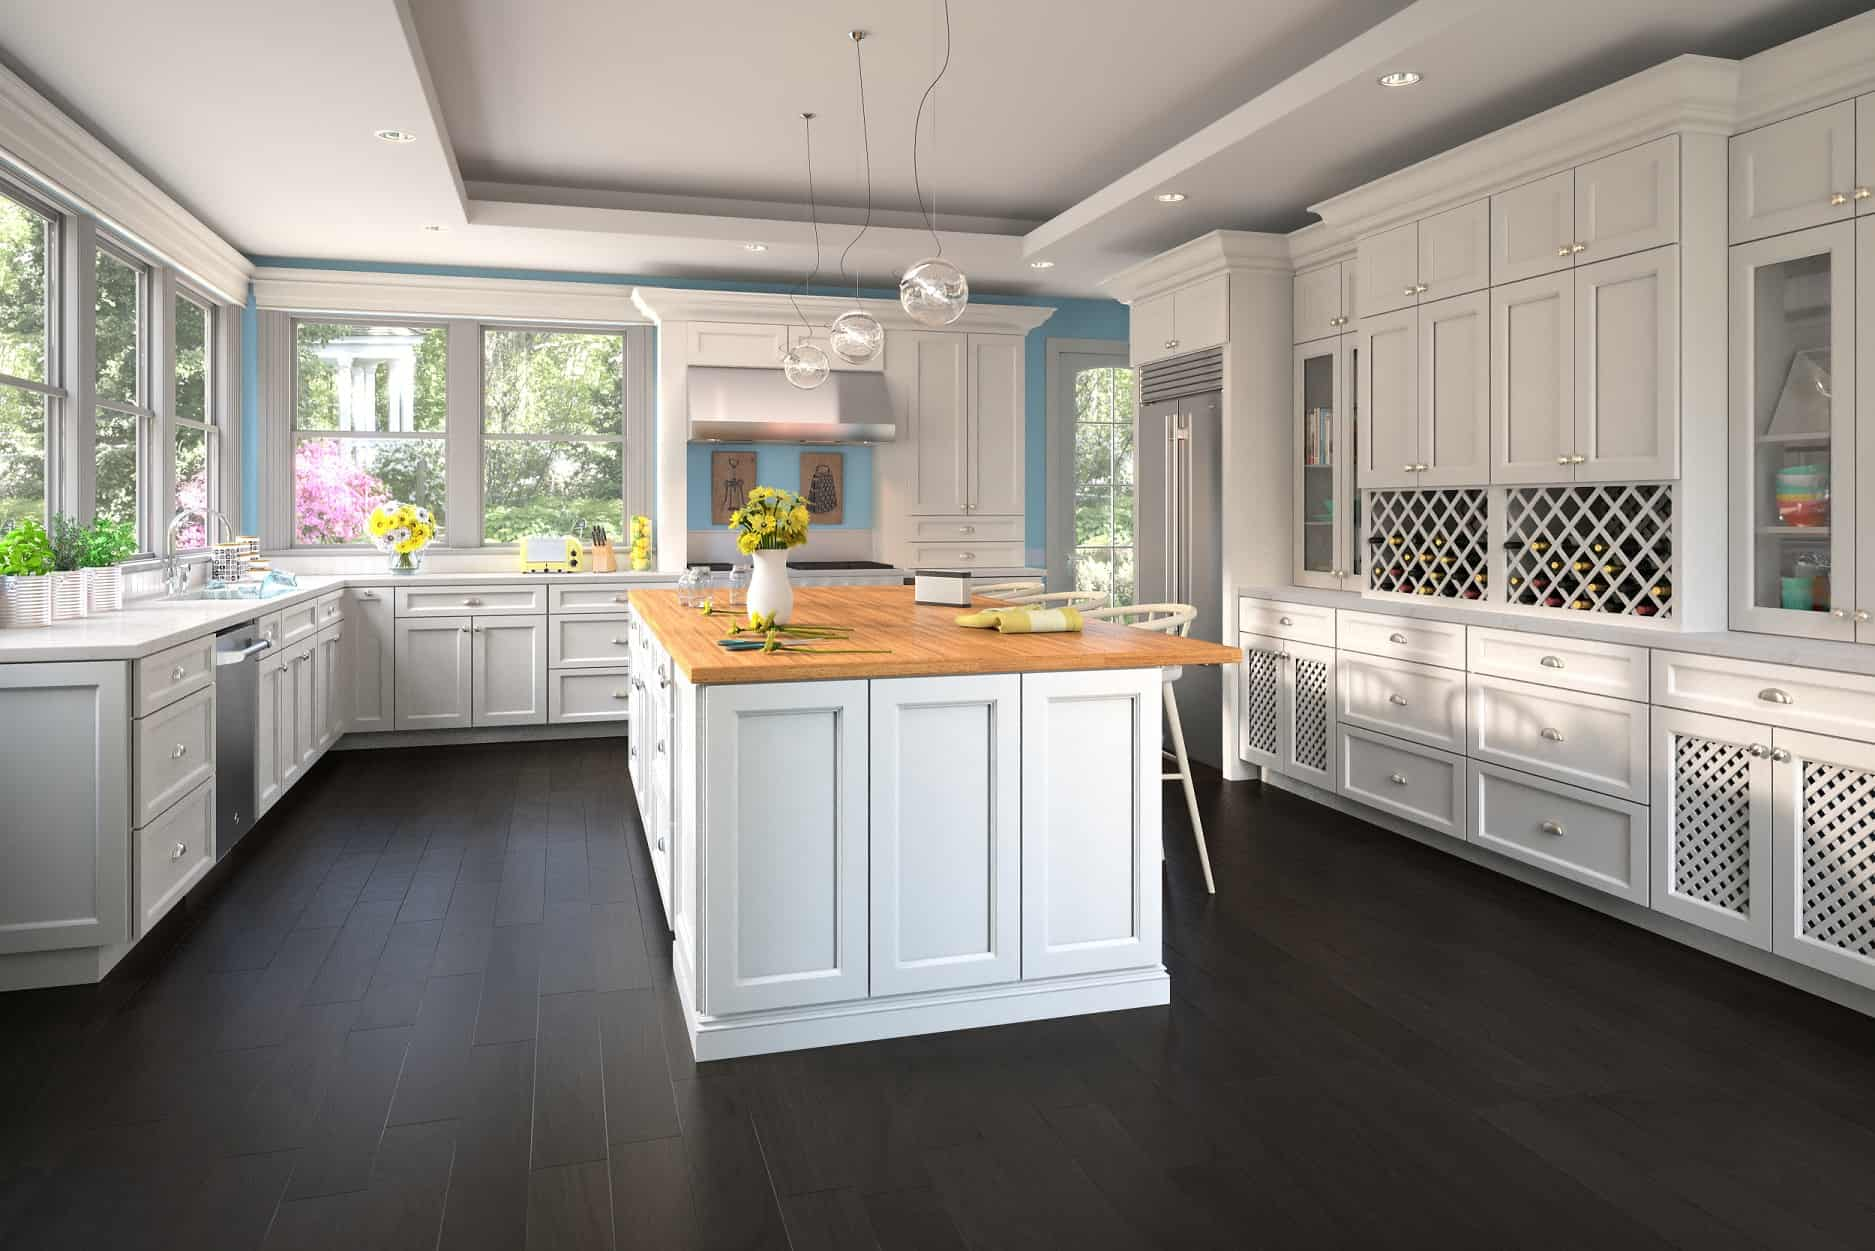 what is the potential cost to refinish your old kitchen cabinets refinishing kitchen cabinets